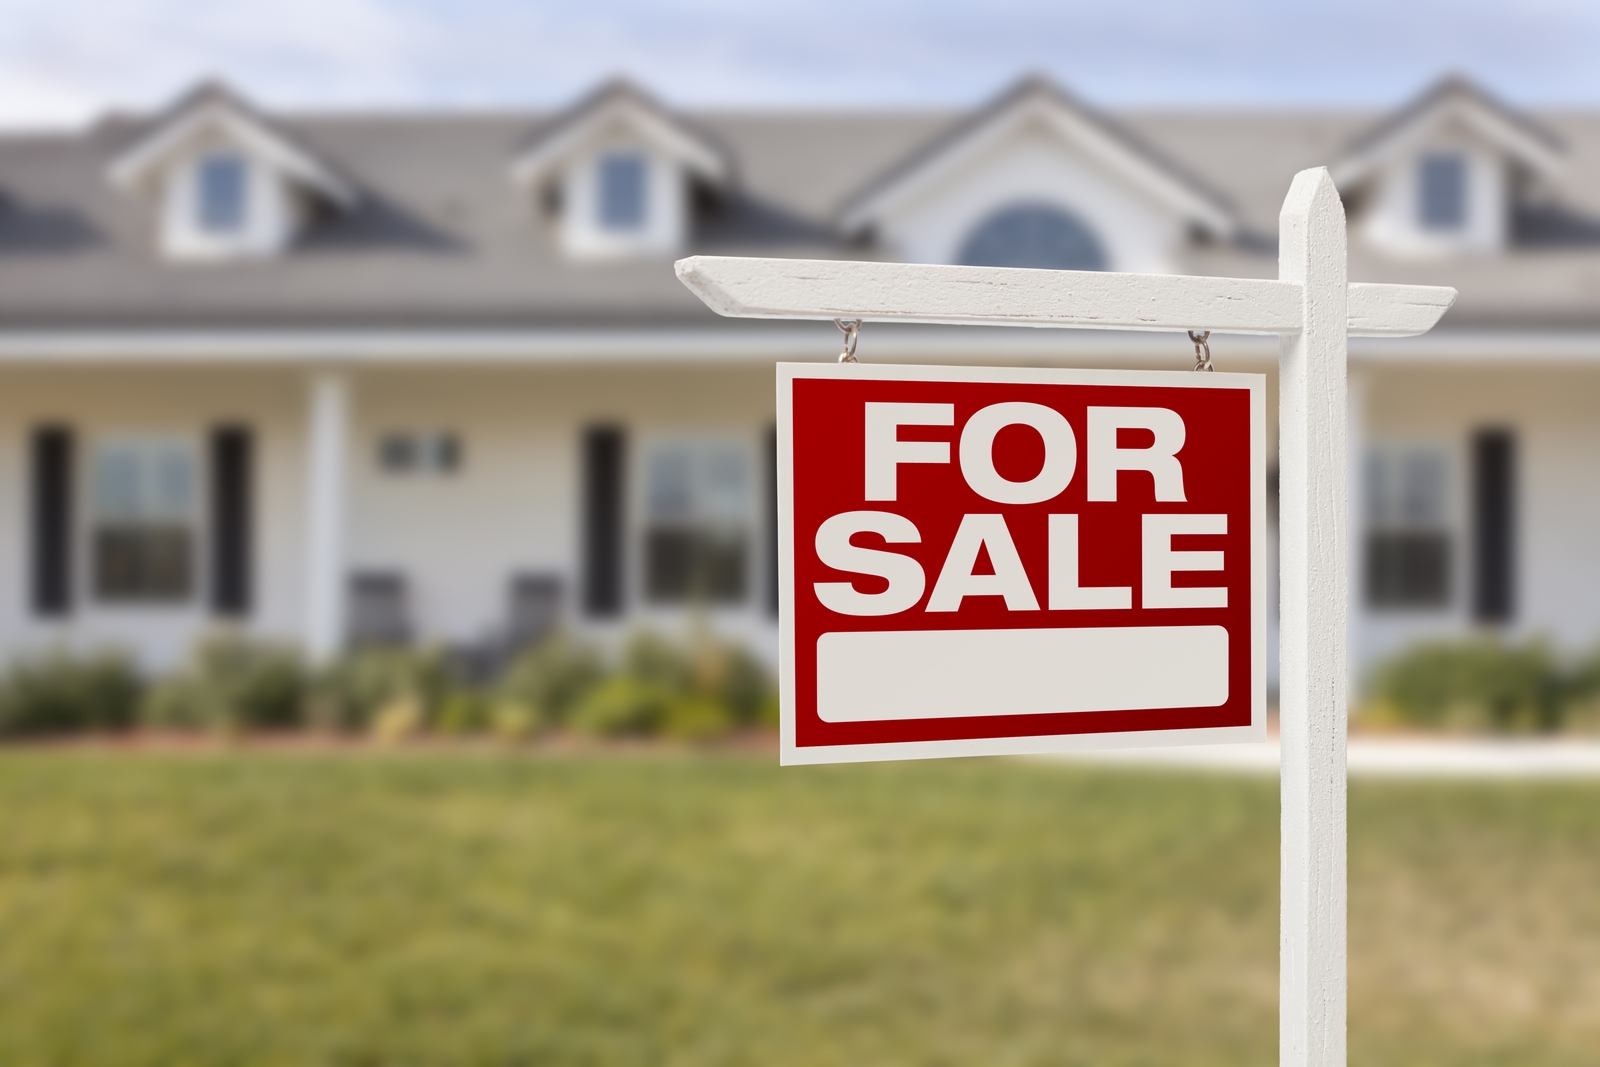 How Many Houses Are Selling In Princeton And How Much Are They Going For?